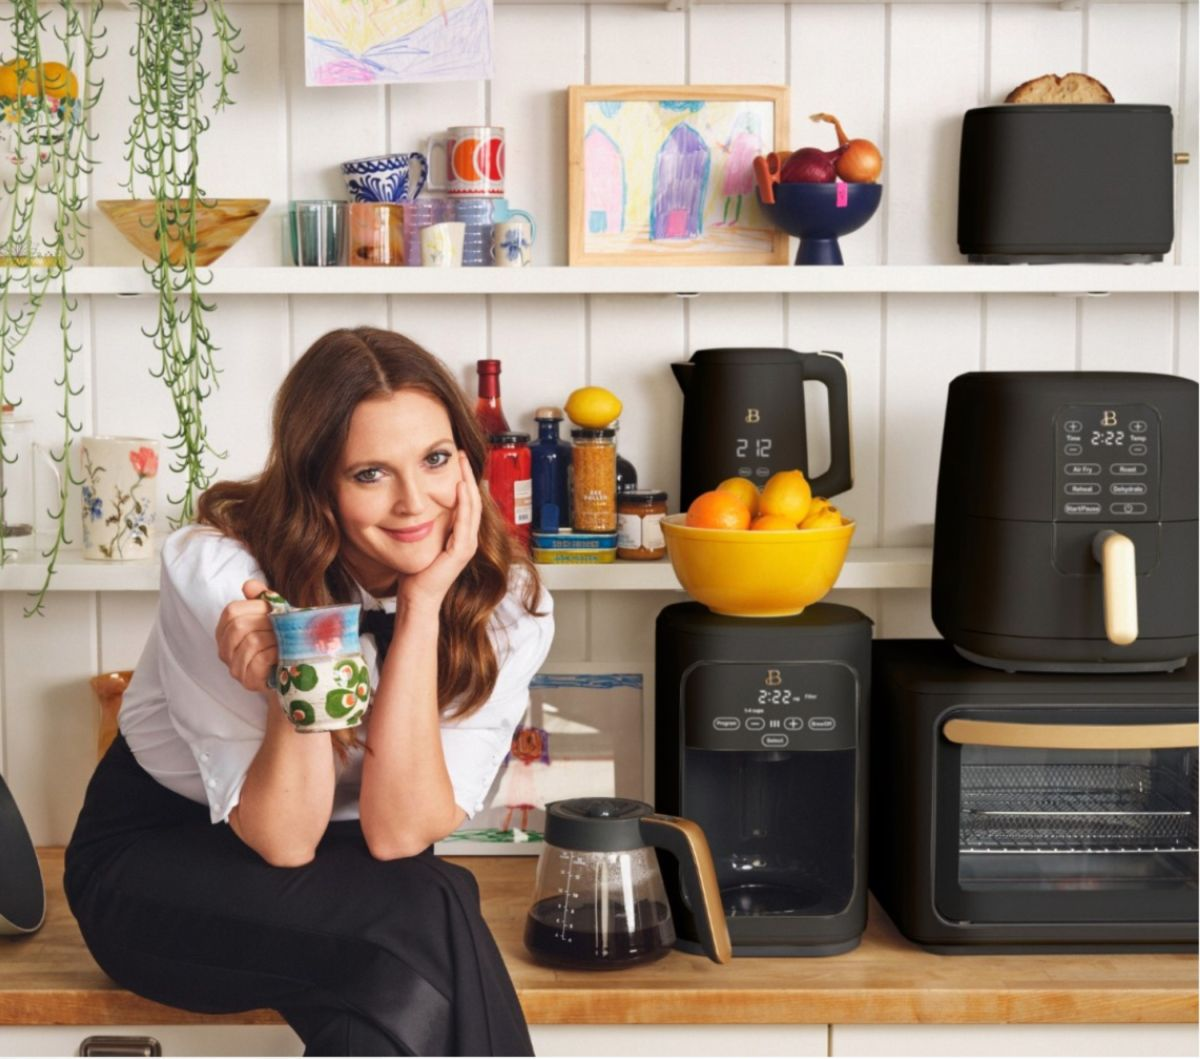 Drew Barrymore's Beautiful Kitchenware just dropped 4 new seriously dreamy shades